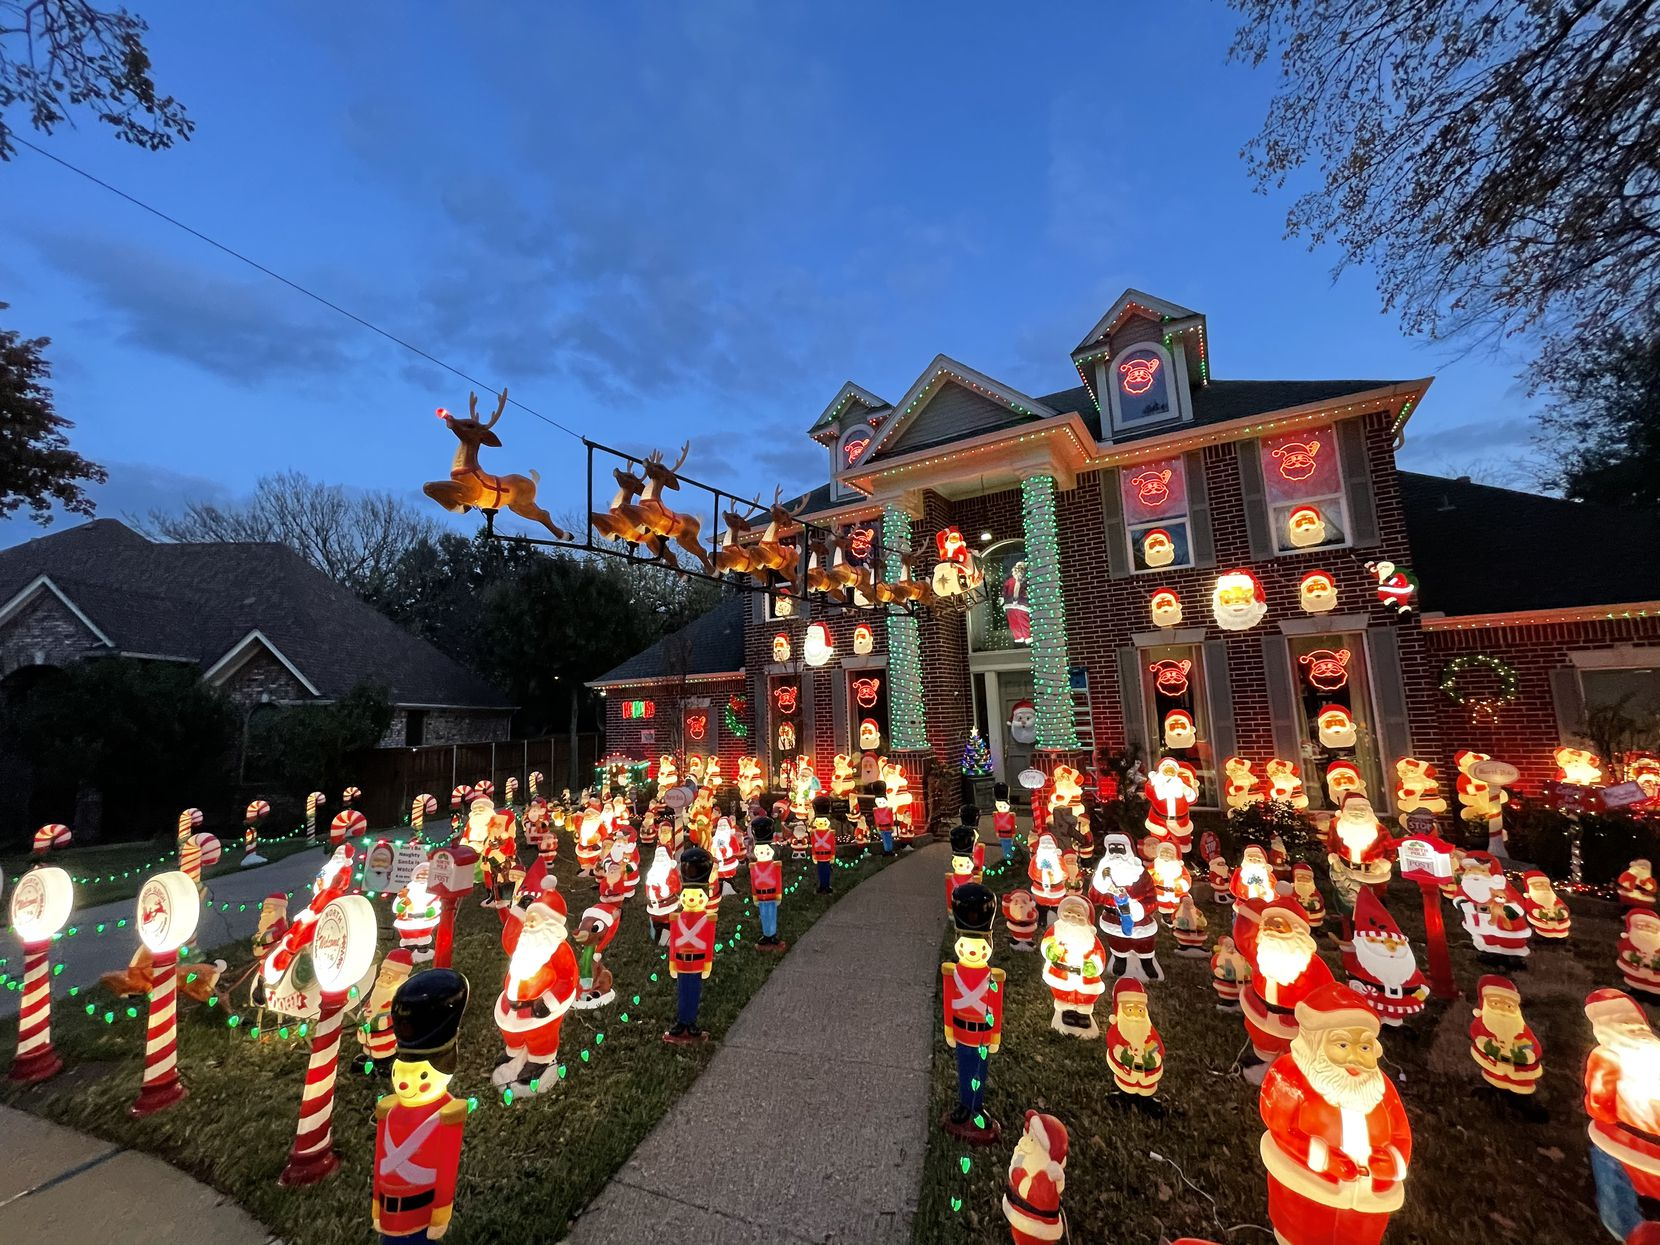 The Grapevine Santa House, which belongs to Louie Murillo, is covered in hundreds of Christmas decorations. The homeowners decided to use their Christmas display to encourage people to donate to local nonprofit GRACE.